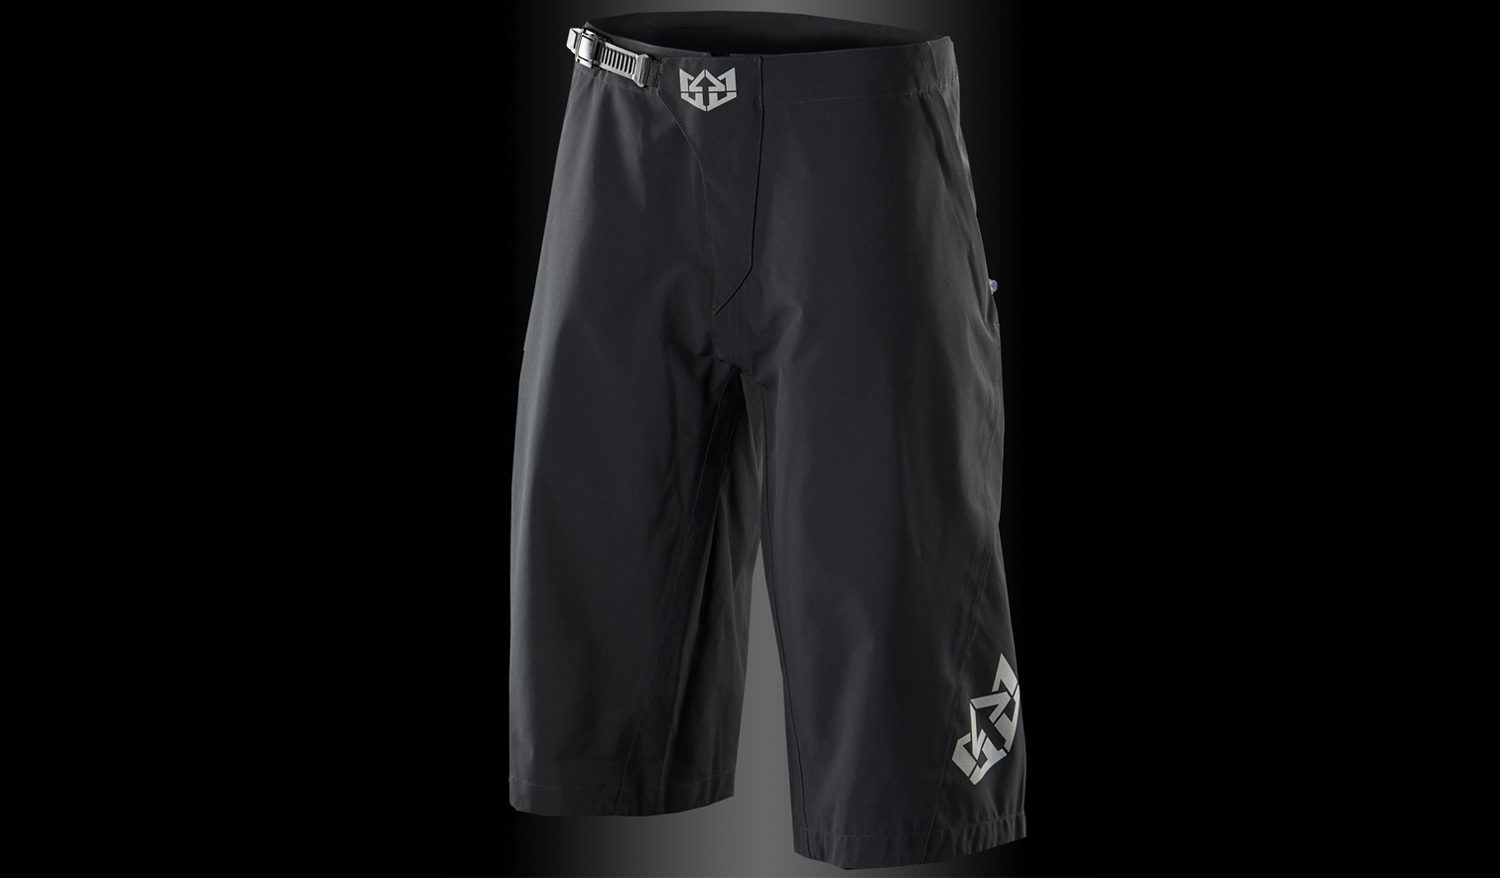 Royal Racing Storm Short